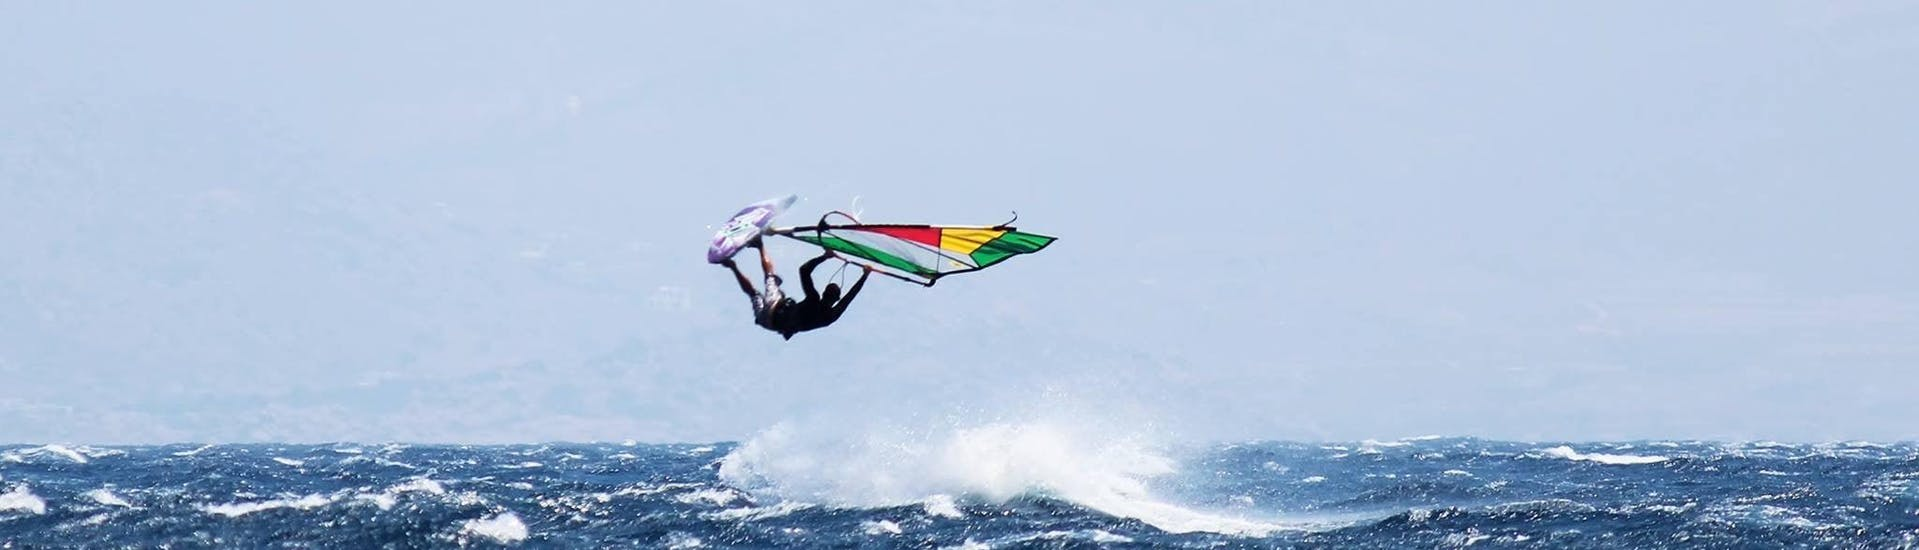 Private Windsurfing Lesson for Kids & Adults - All Levels with Paros Windsurf Center - Hero image